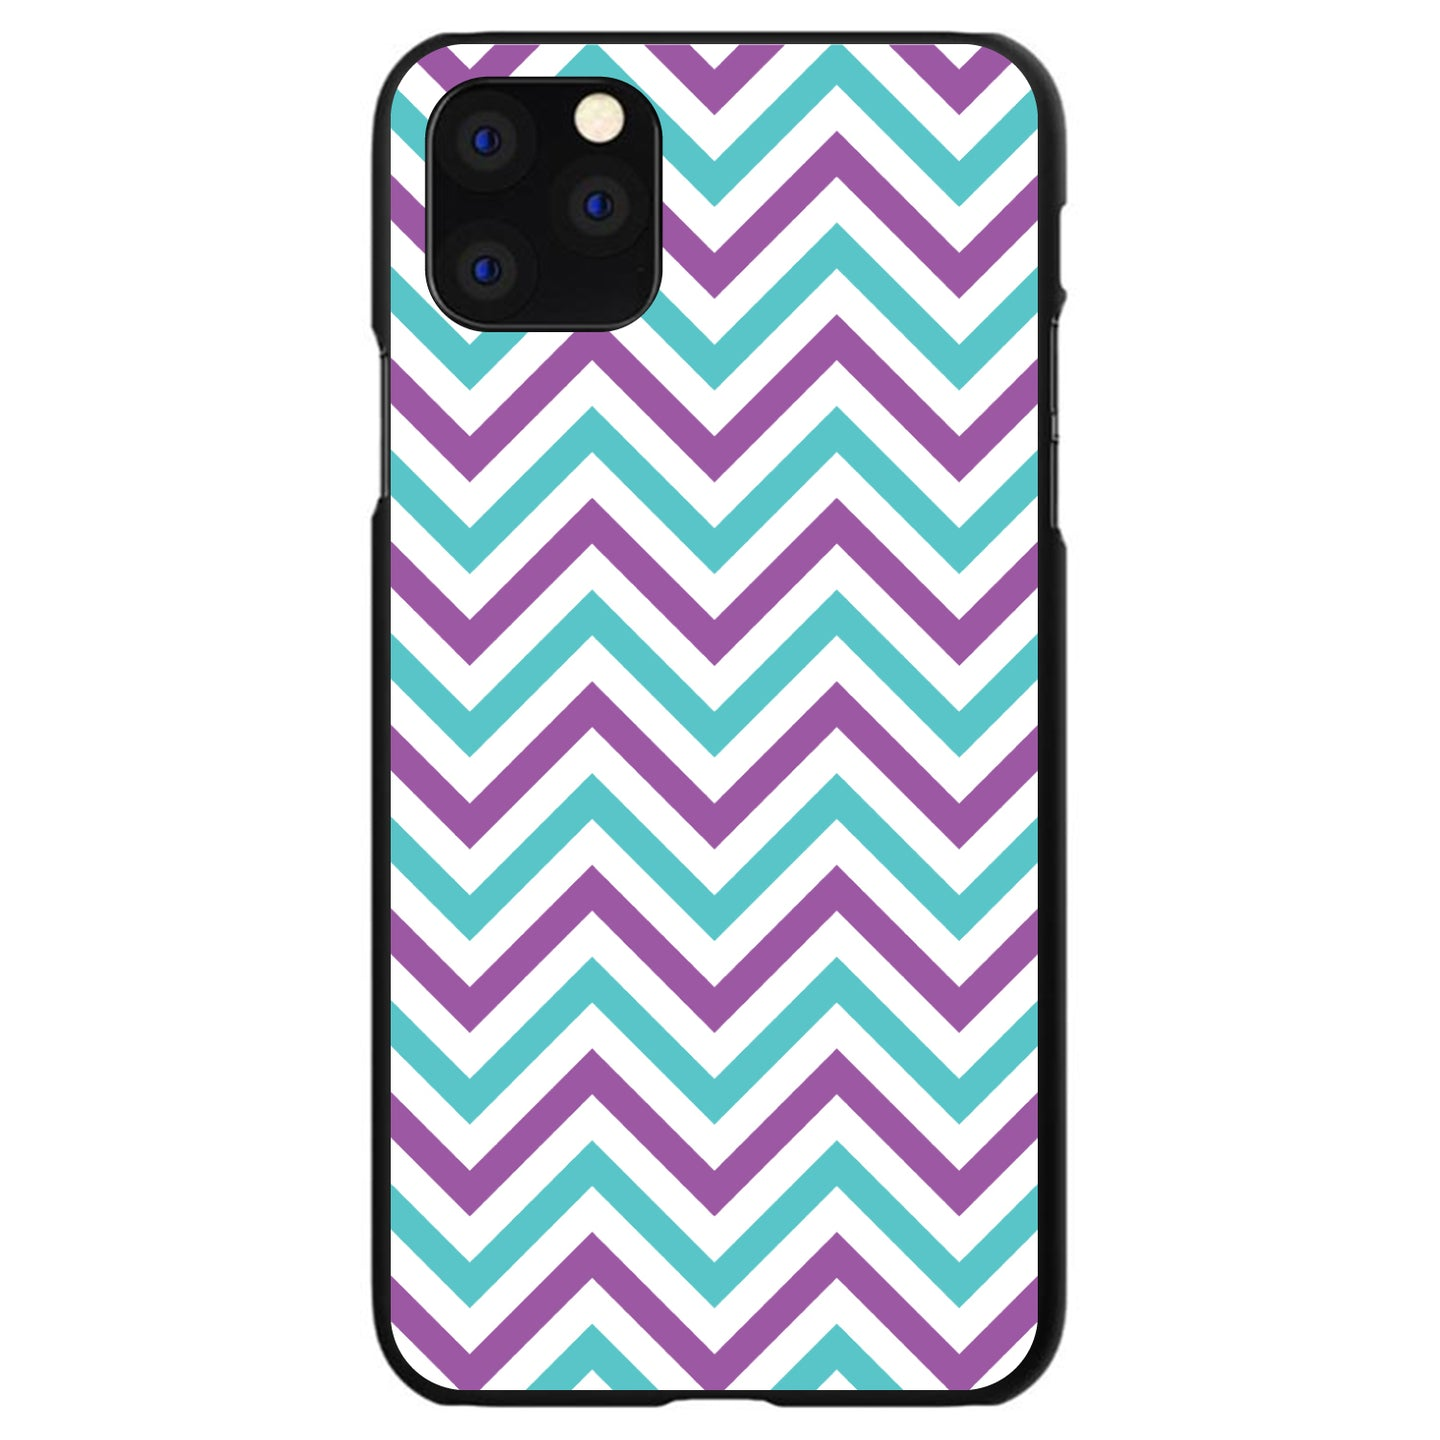 DistinctInk® Hard Plastic Snap-On Case for Apple iPhone - Purple Teal Chevron Stripes